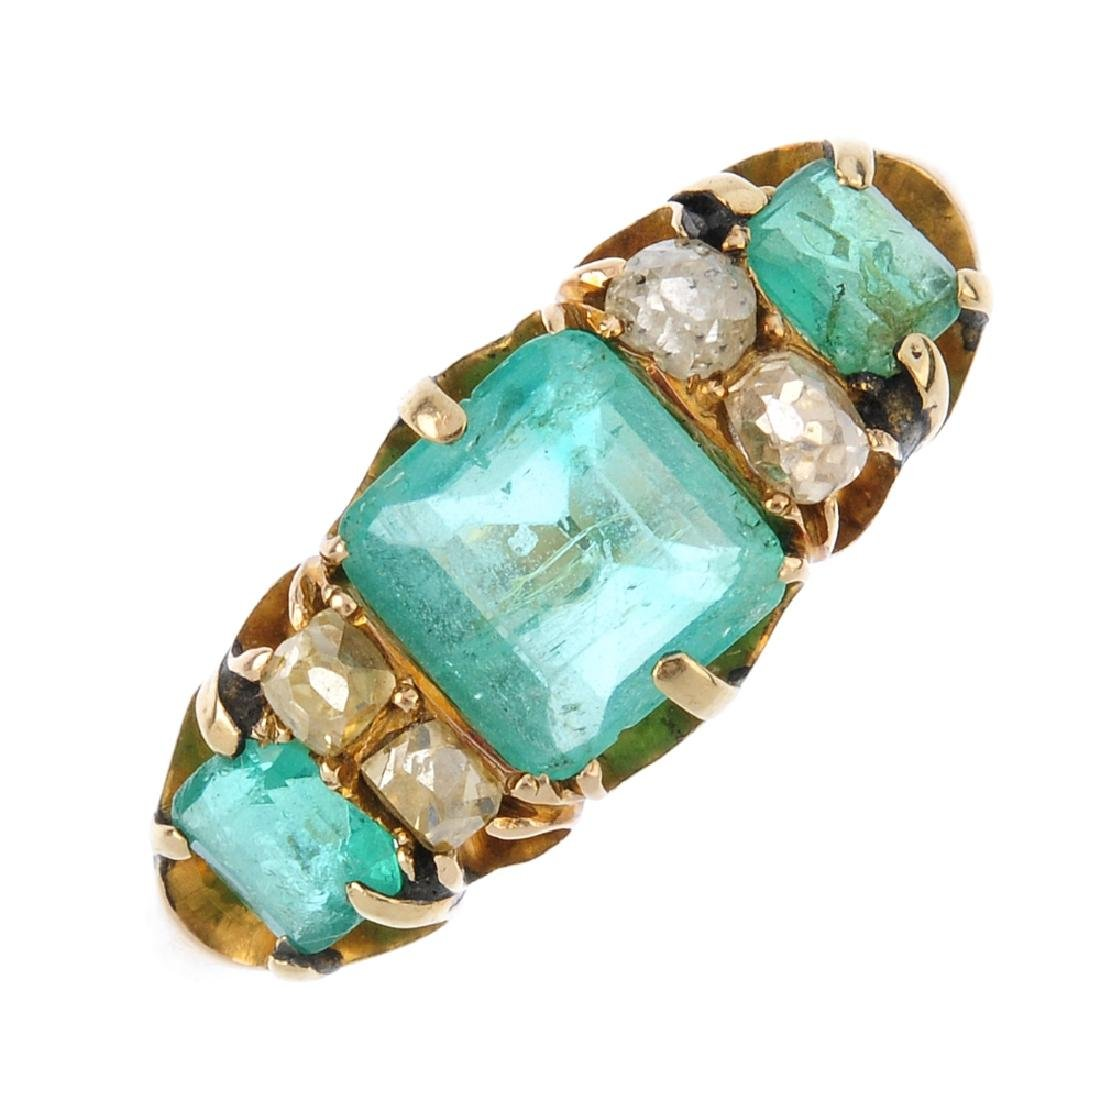 An emerald and diamond dress ring. The square-shape